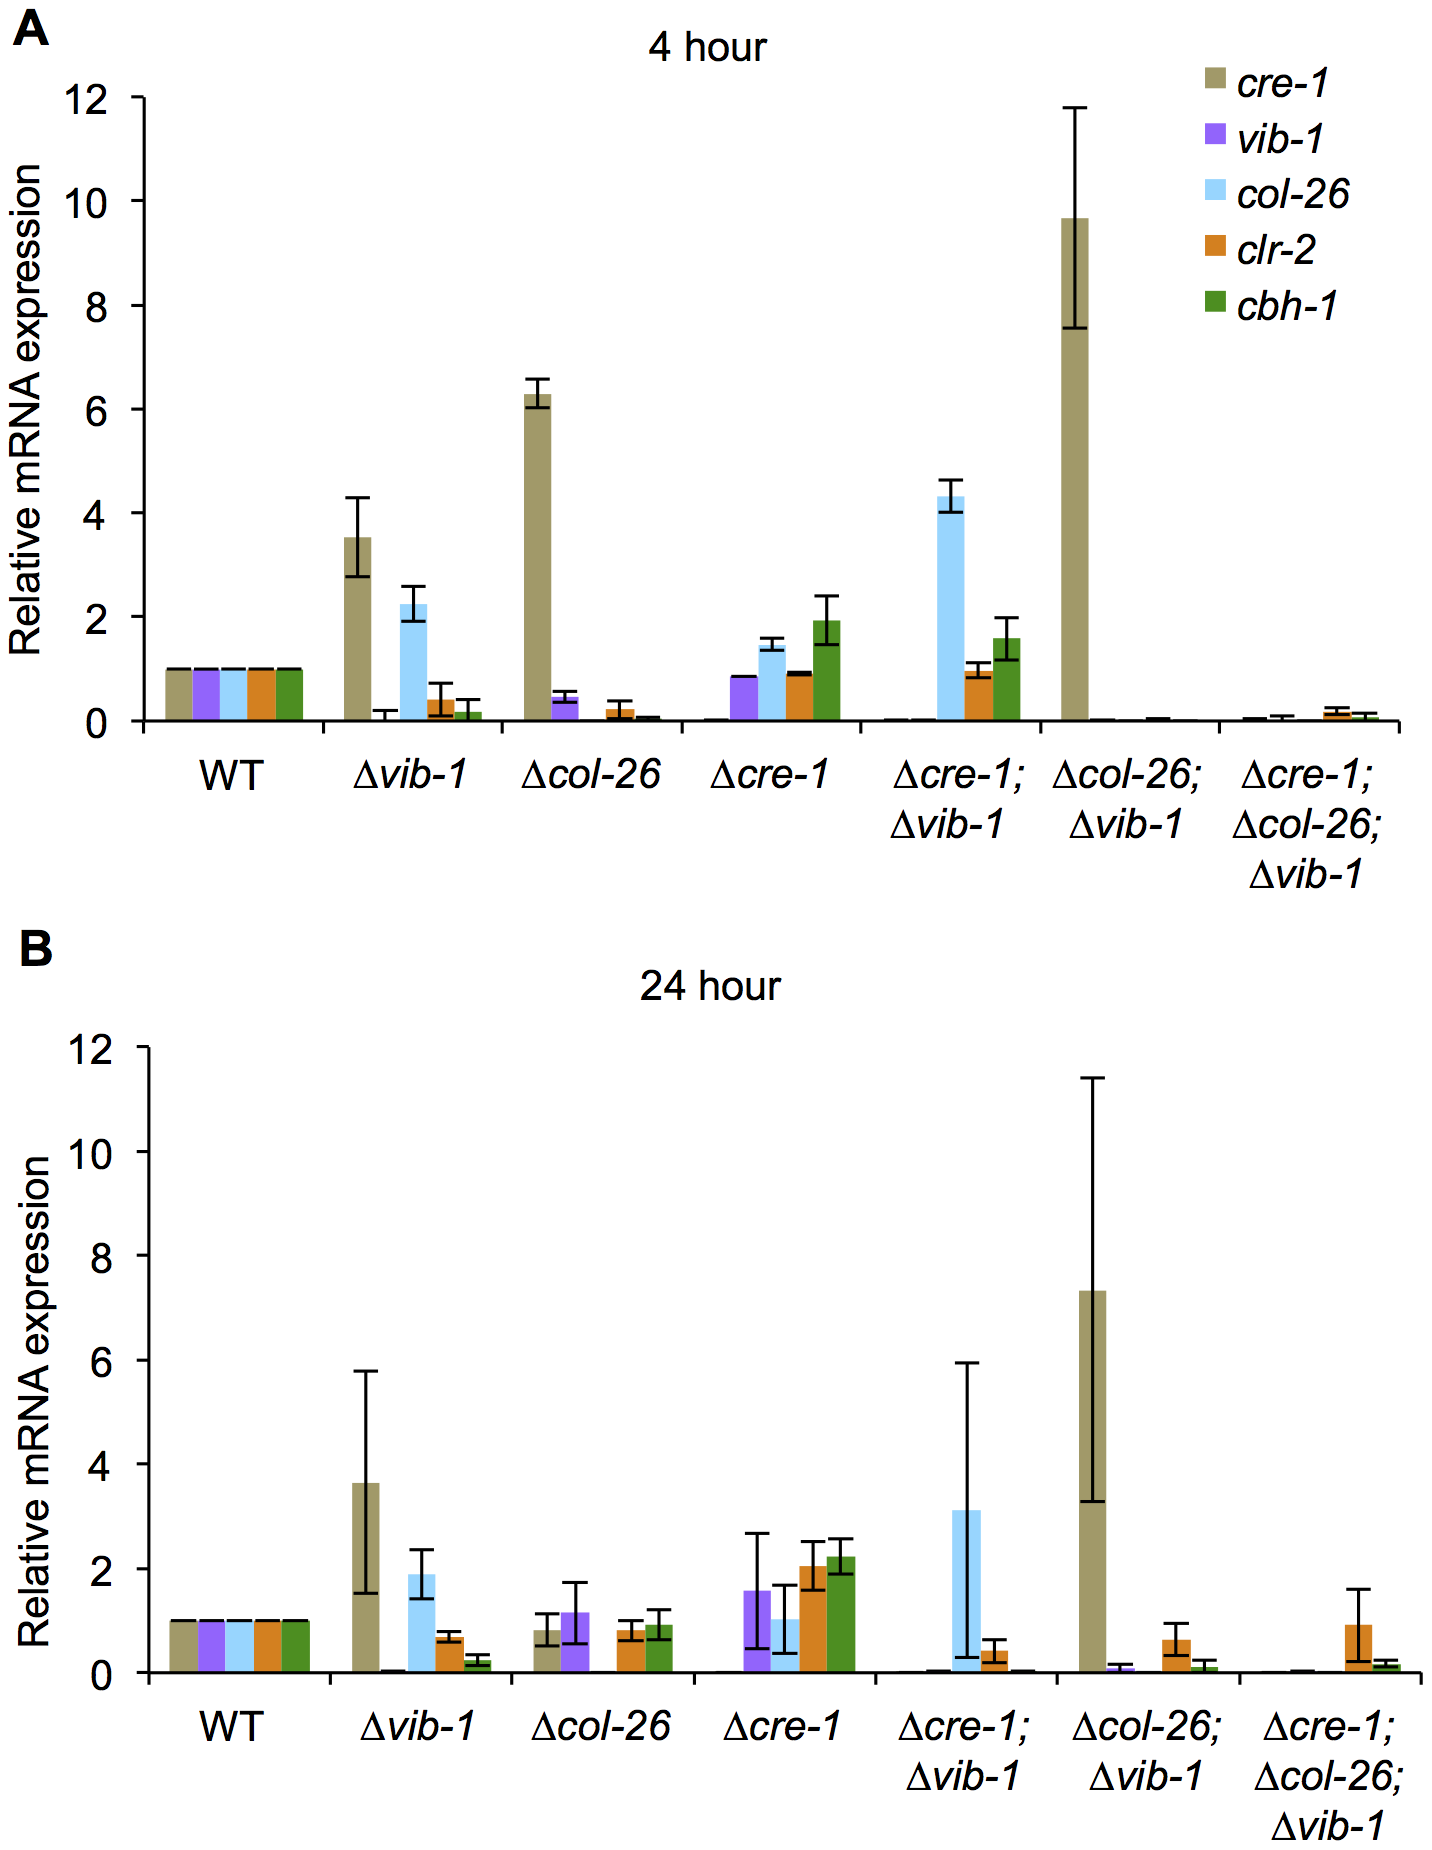 Suppression of <i>cre-1</i> and <i>col-26</i> expression by VIB1 plays a role in early inductive and utilization phase during growth on cellulose.